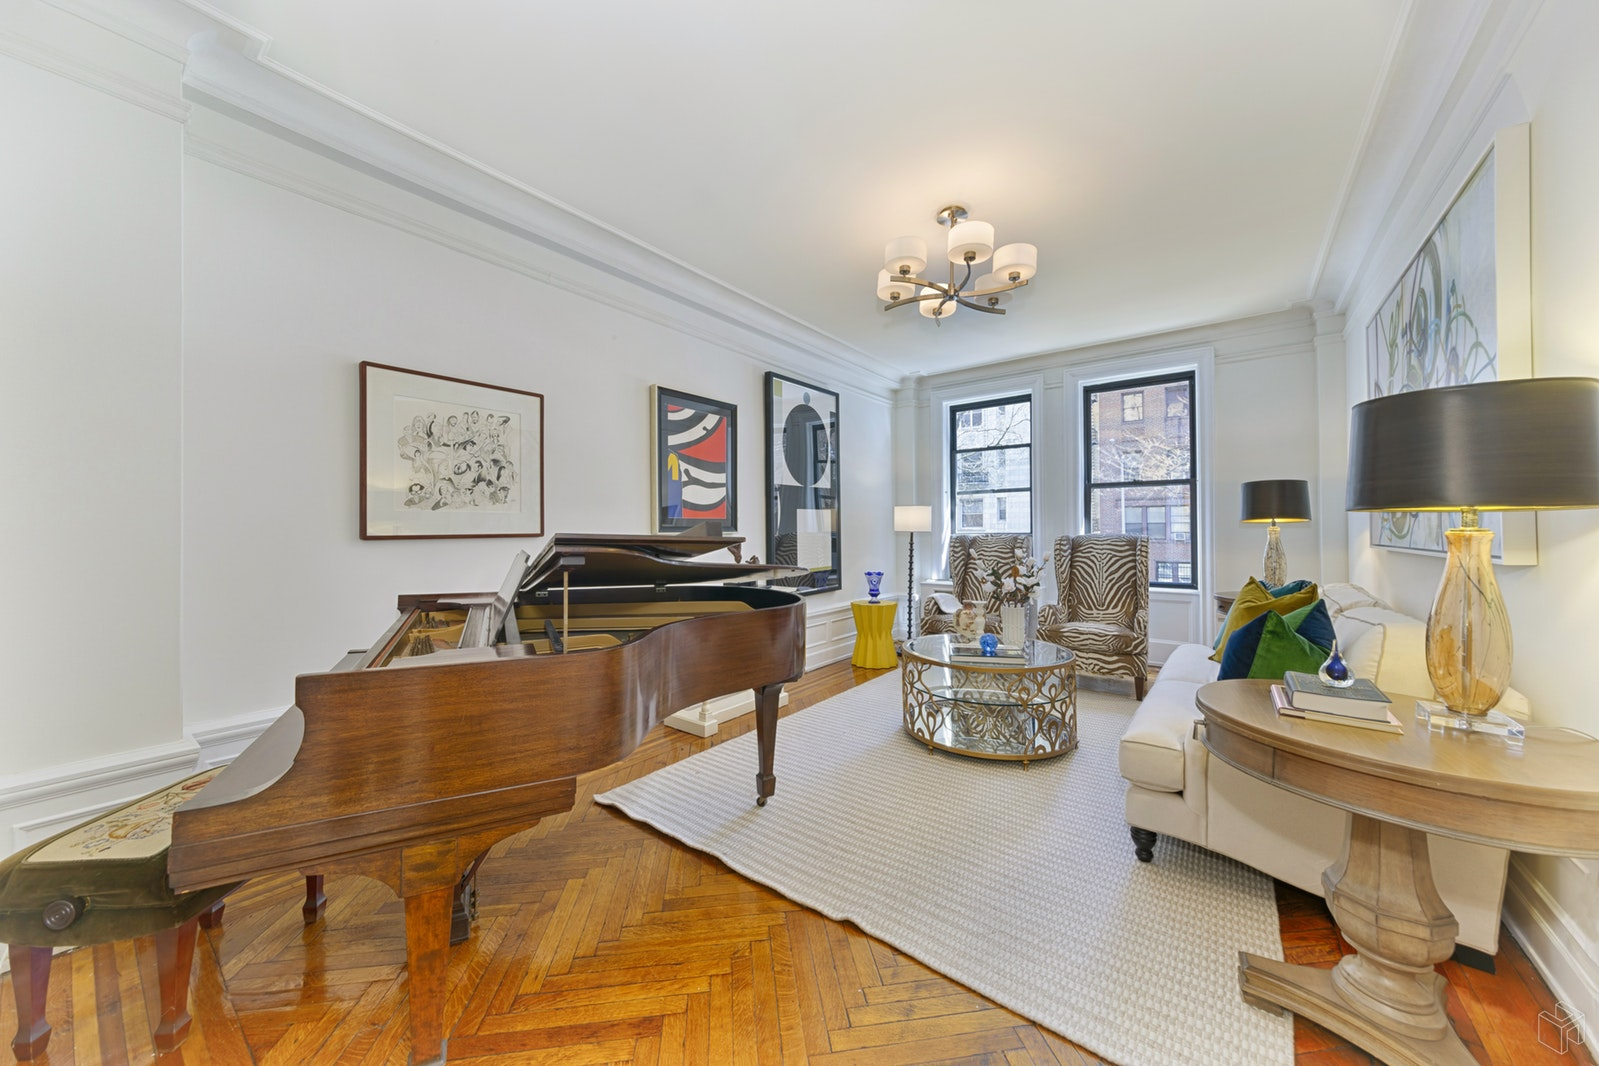 771 West End Avenue 2d, Upper West Side, NYC, 10025, $1,895,000, Property For Sale, Halstead Real Estate, Photo 1